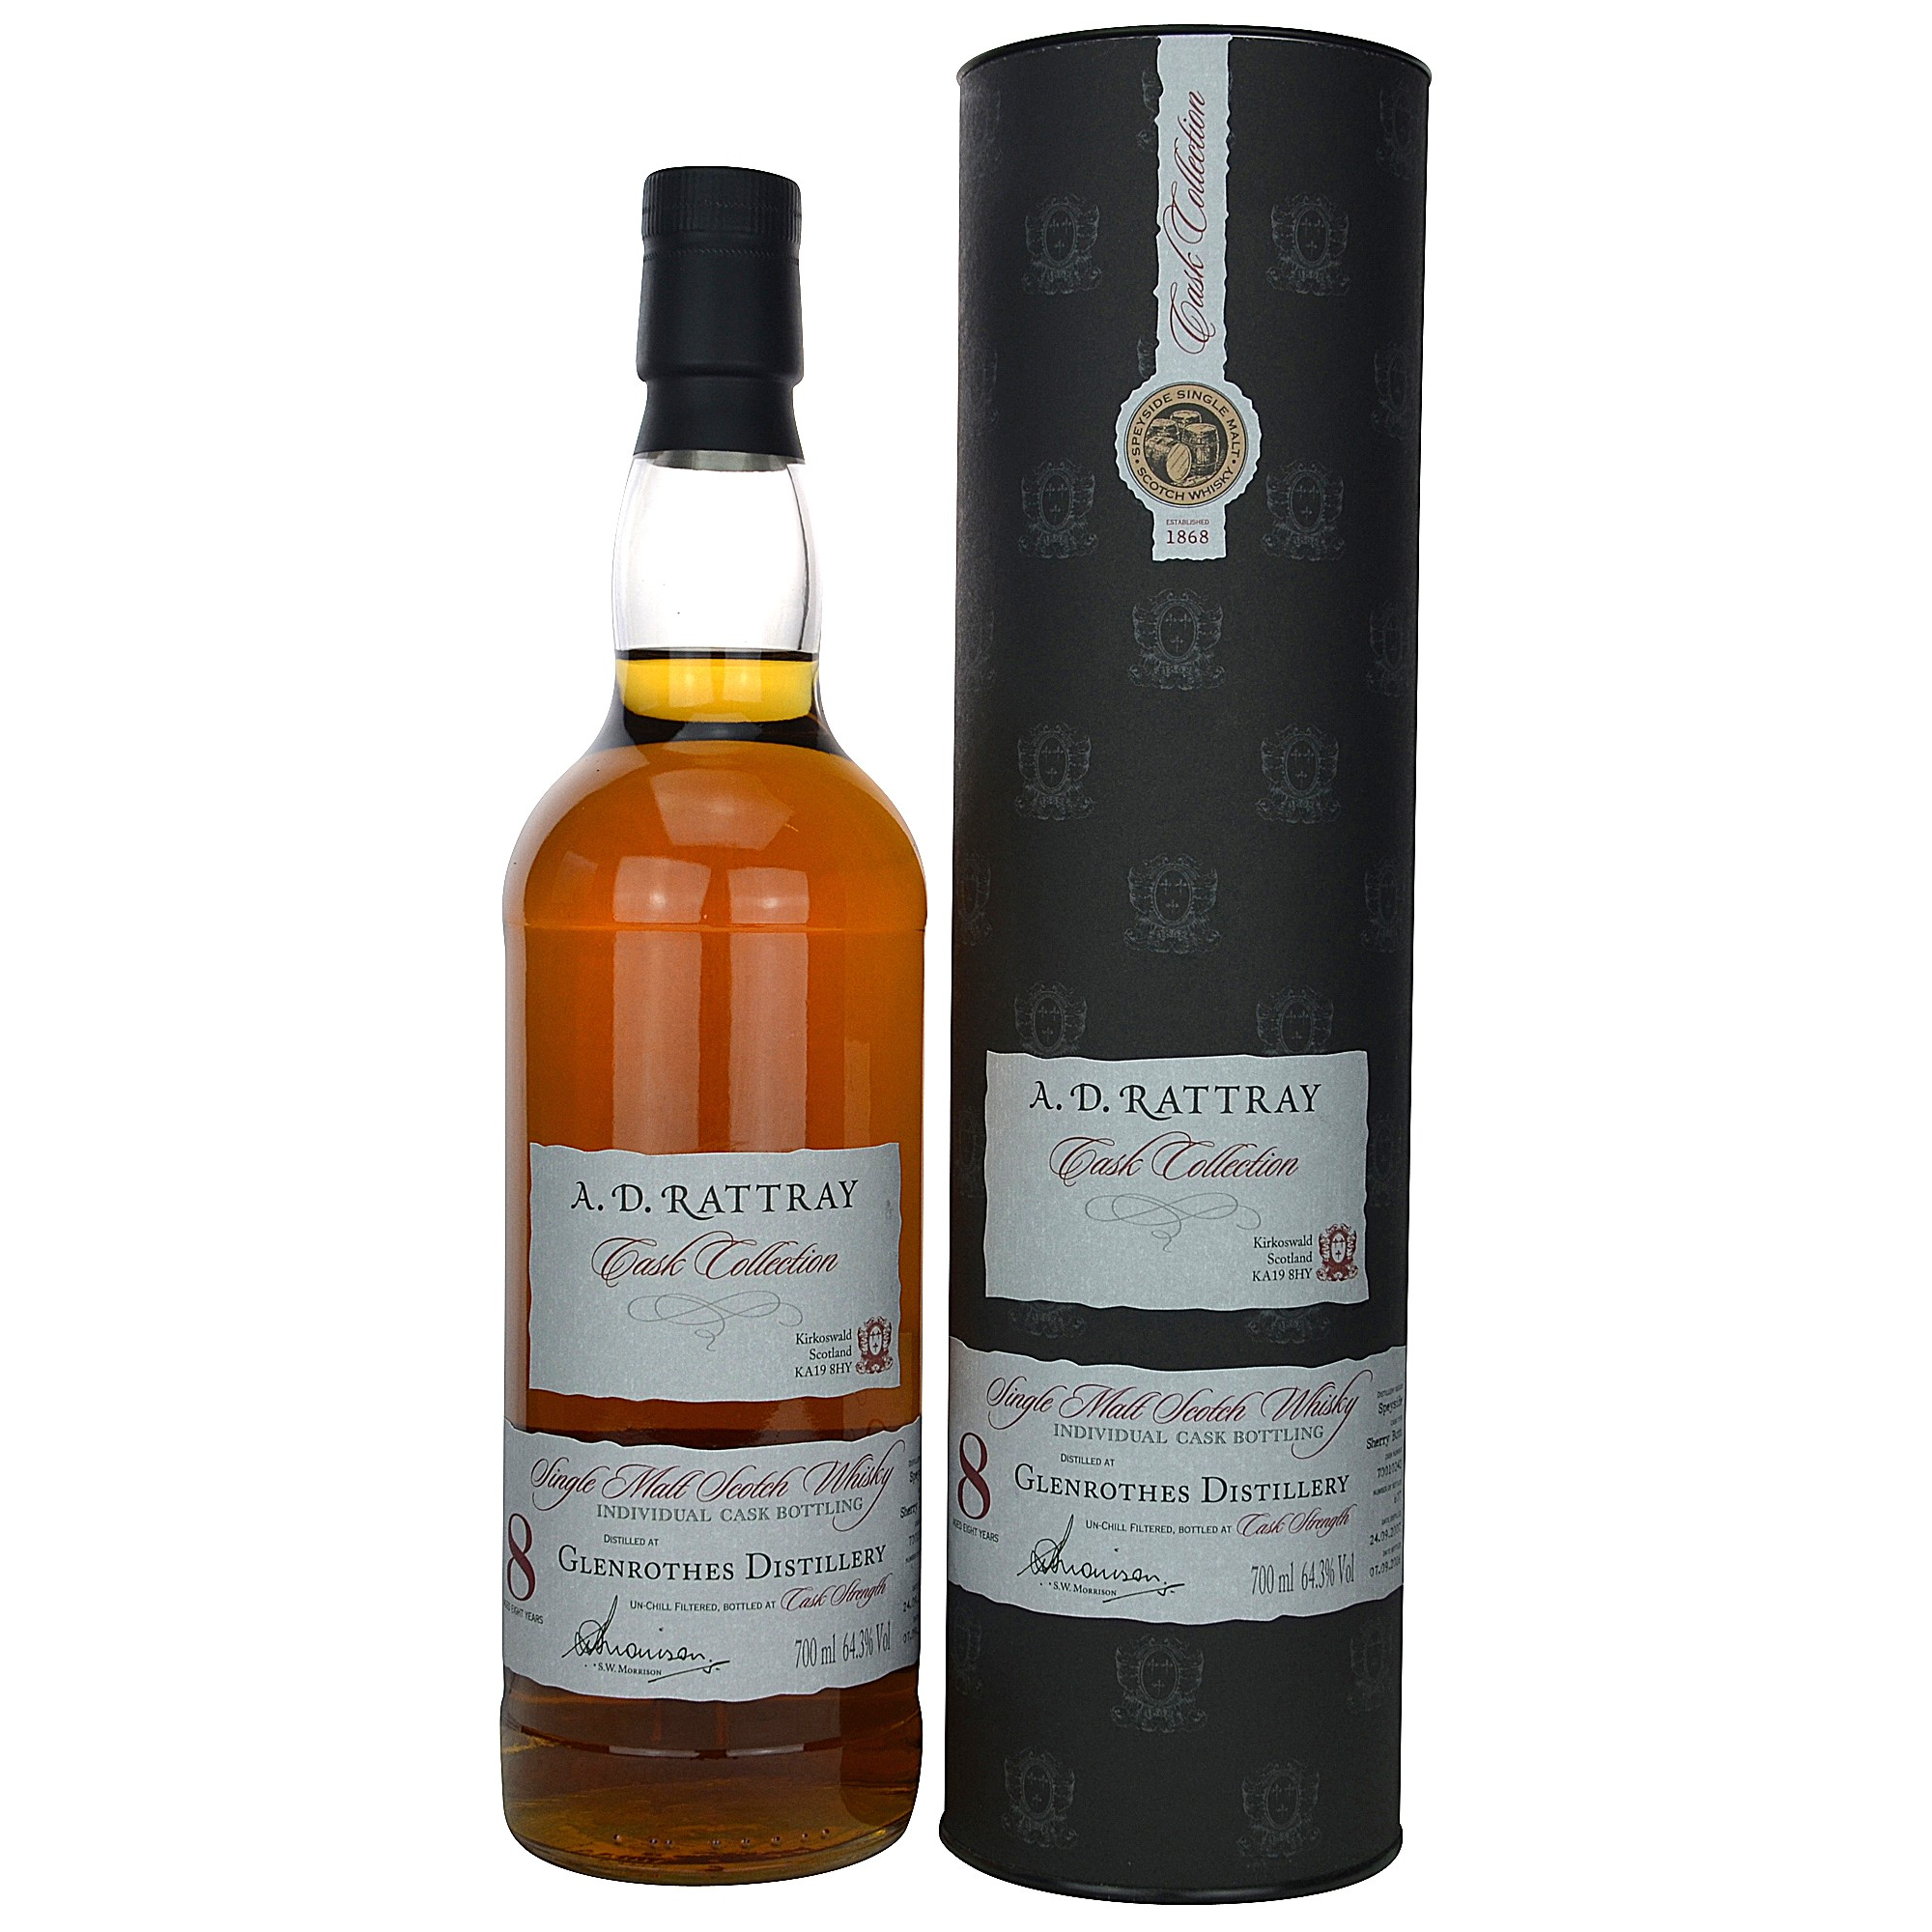 Glenrothes 8 Jahre 2007/2016 Single Cask No. 70010242 (A.D. Rattray)